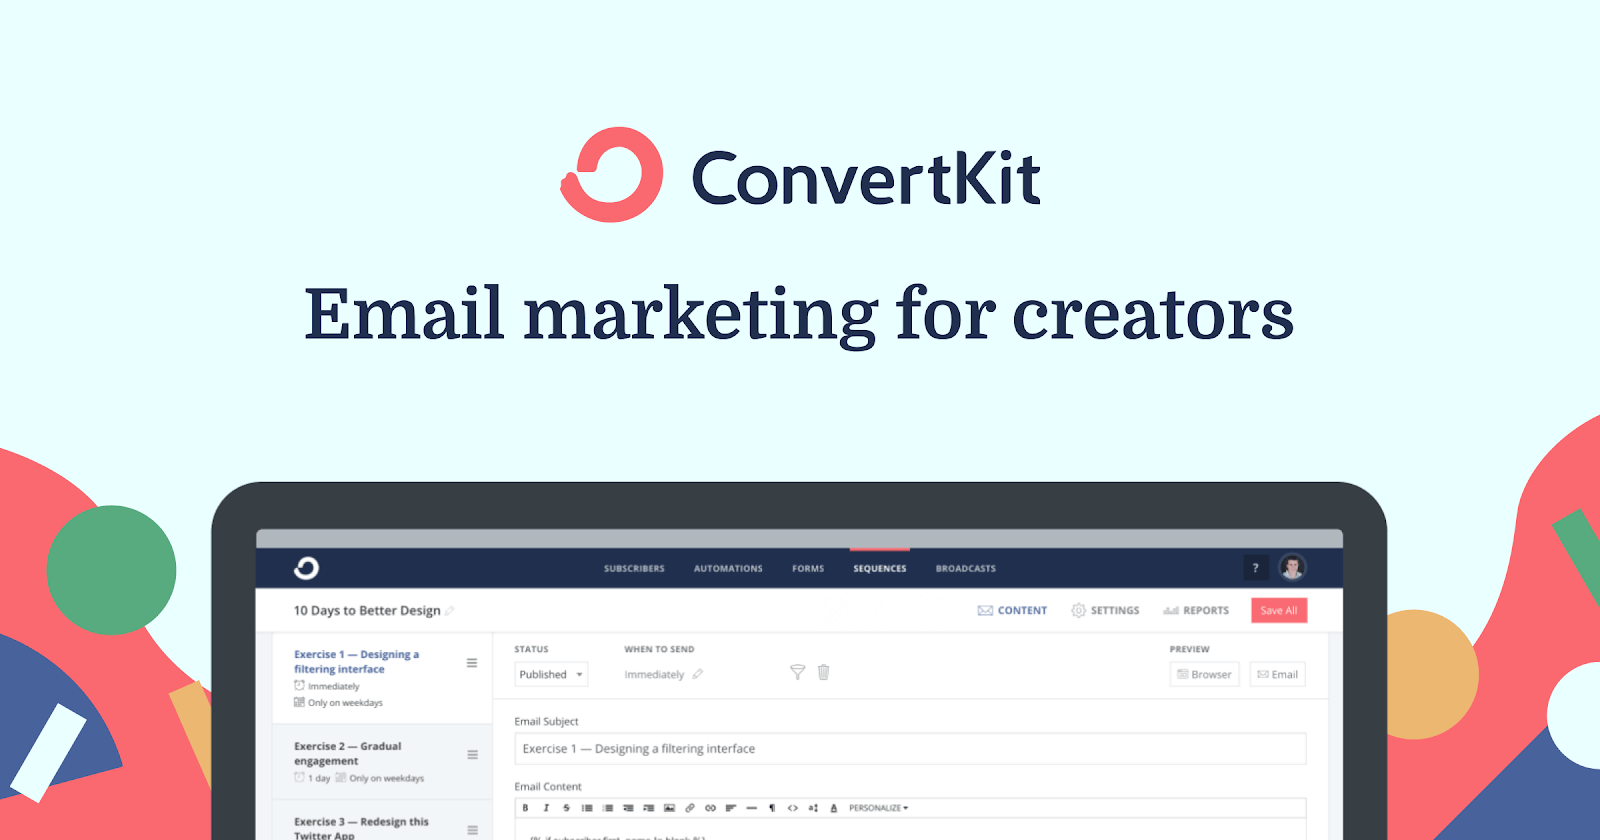 ConverKit - email marketing for creators